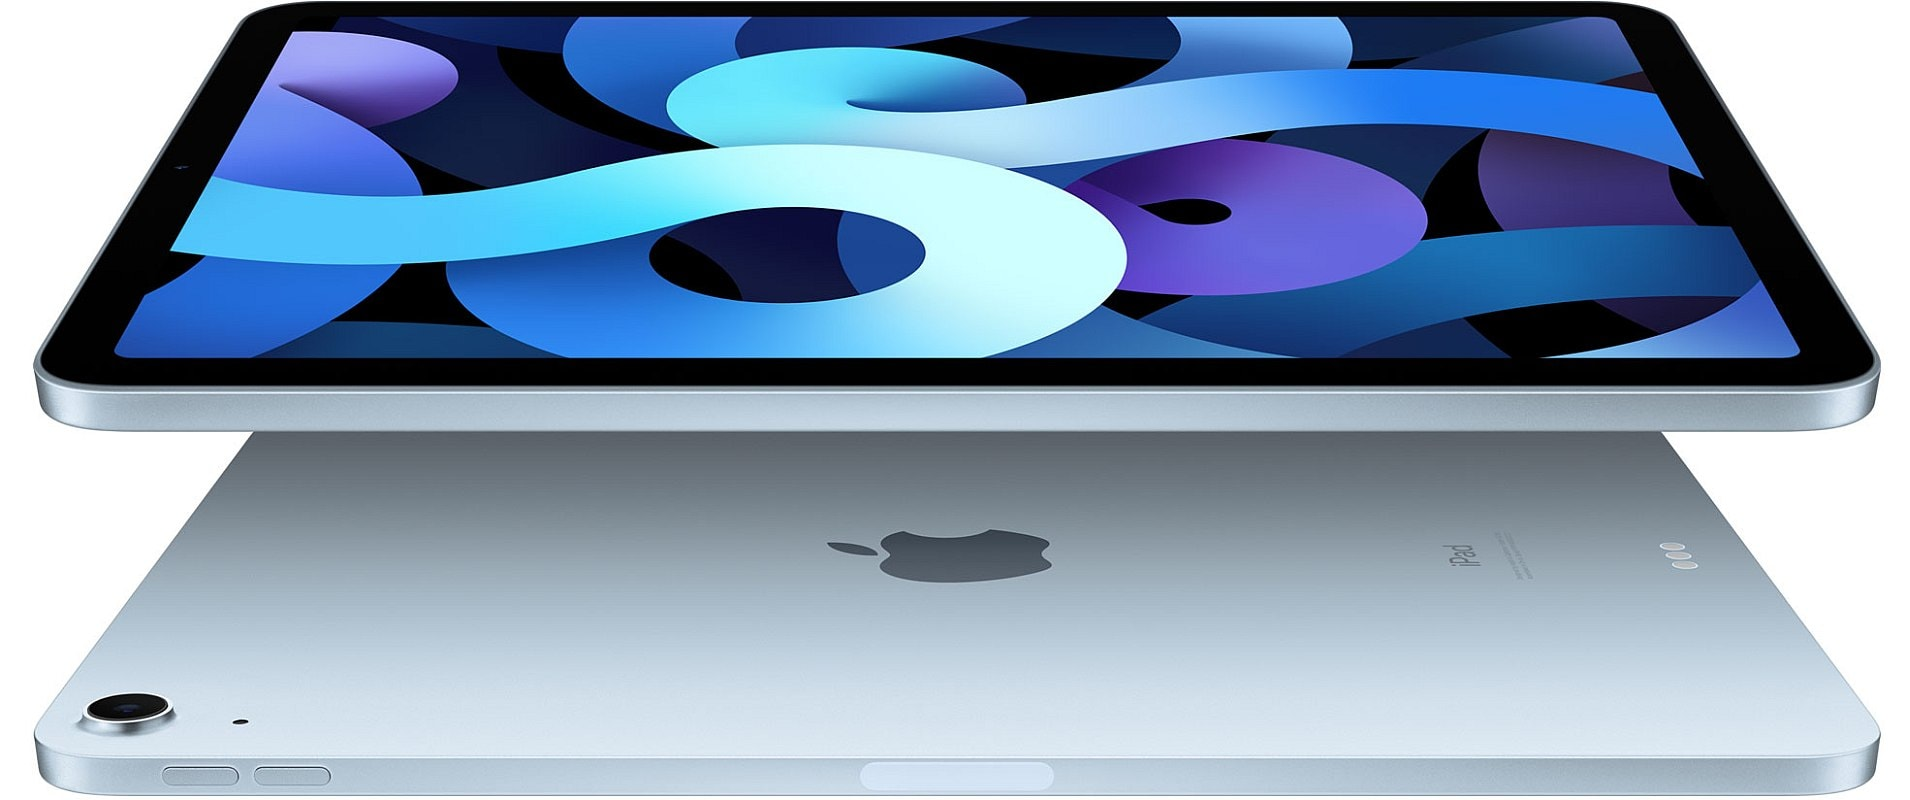 Apple iPad Air (2020) Wi-Fi Price, Specifications ...